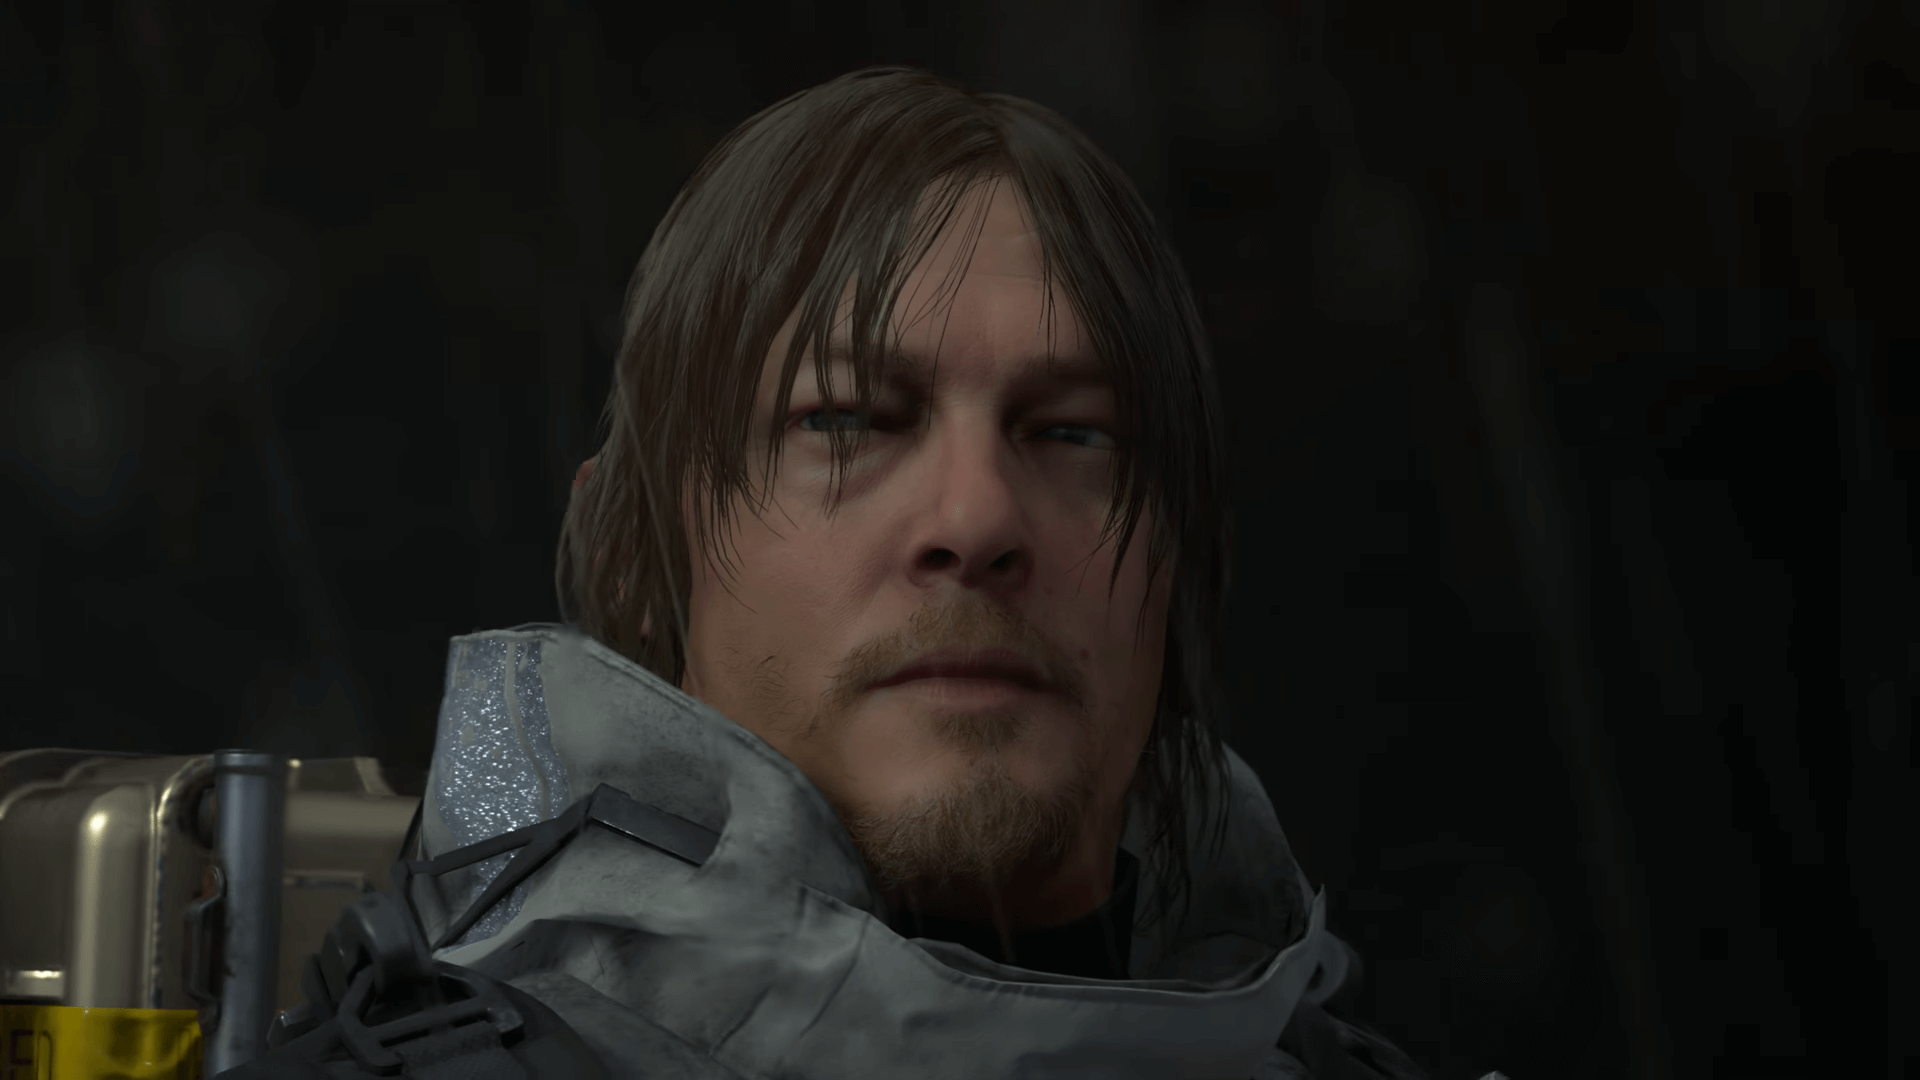 Sony E3 2018: Death Stranding Gameplay Reveal